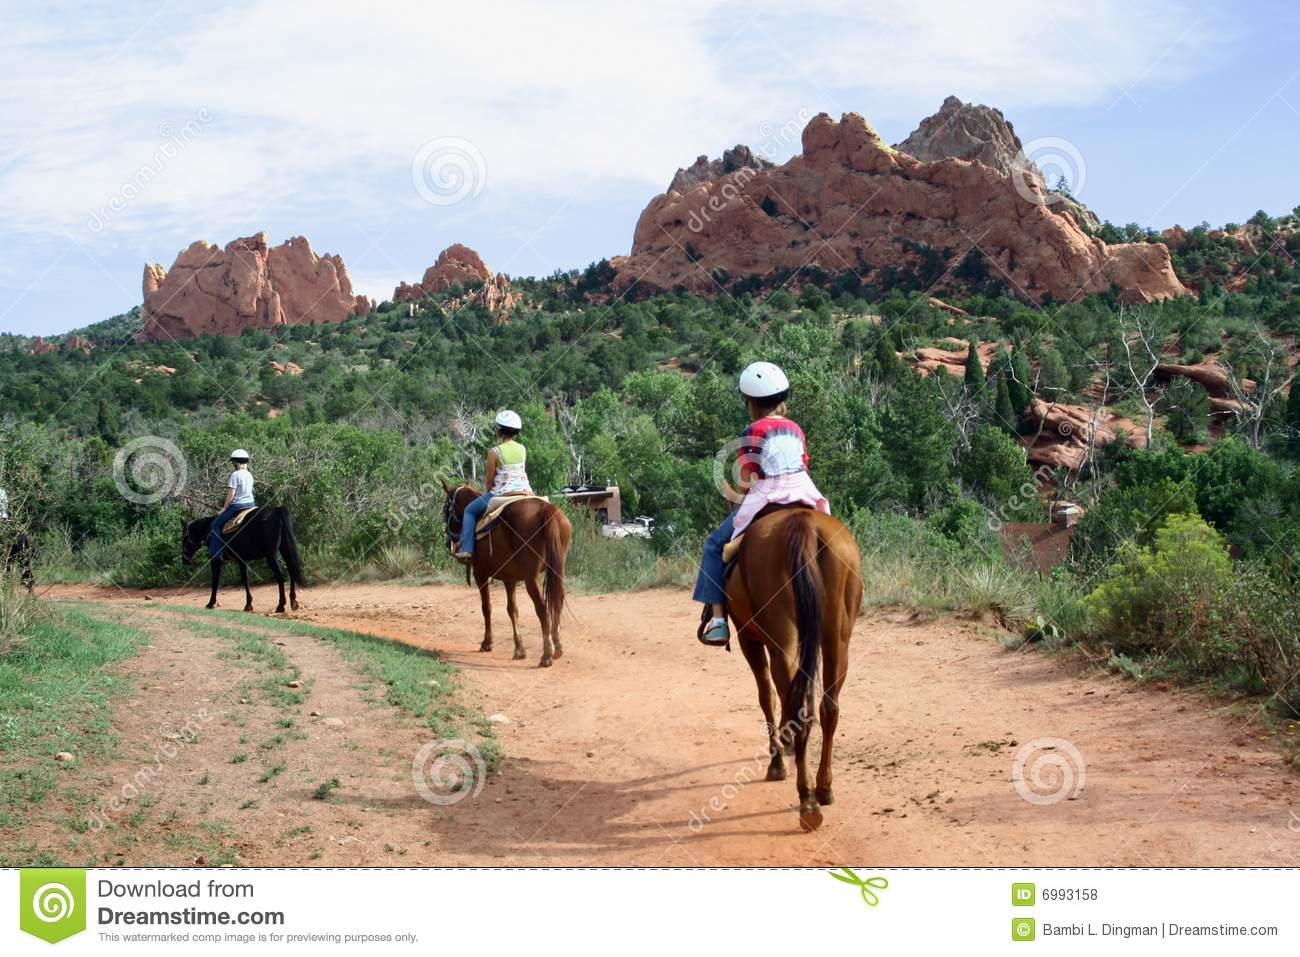 horseback riding in the garden of the gods royalty free stock photos image 6993158